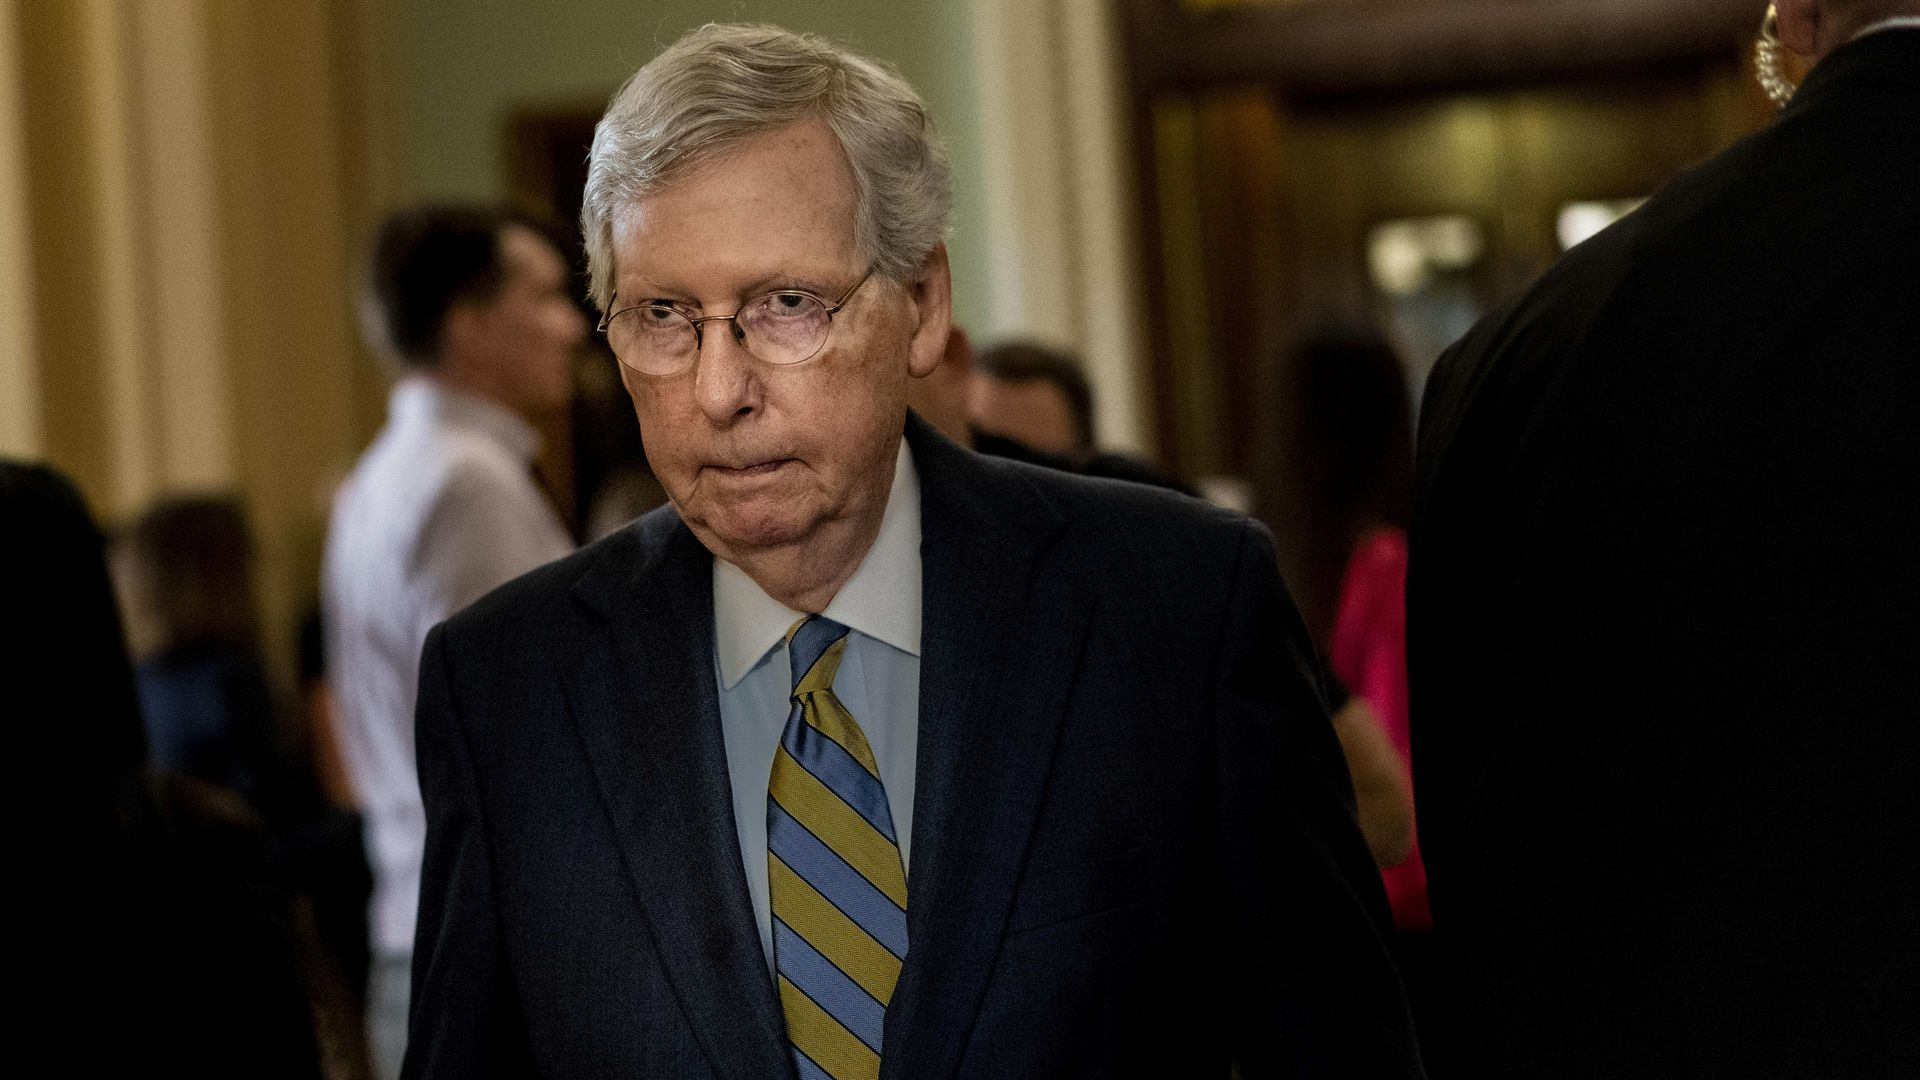 In this image, McConnell wears a stripe tie and a suit and walks through a crowded hallway.